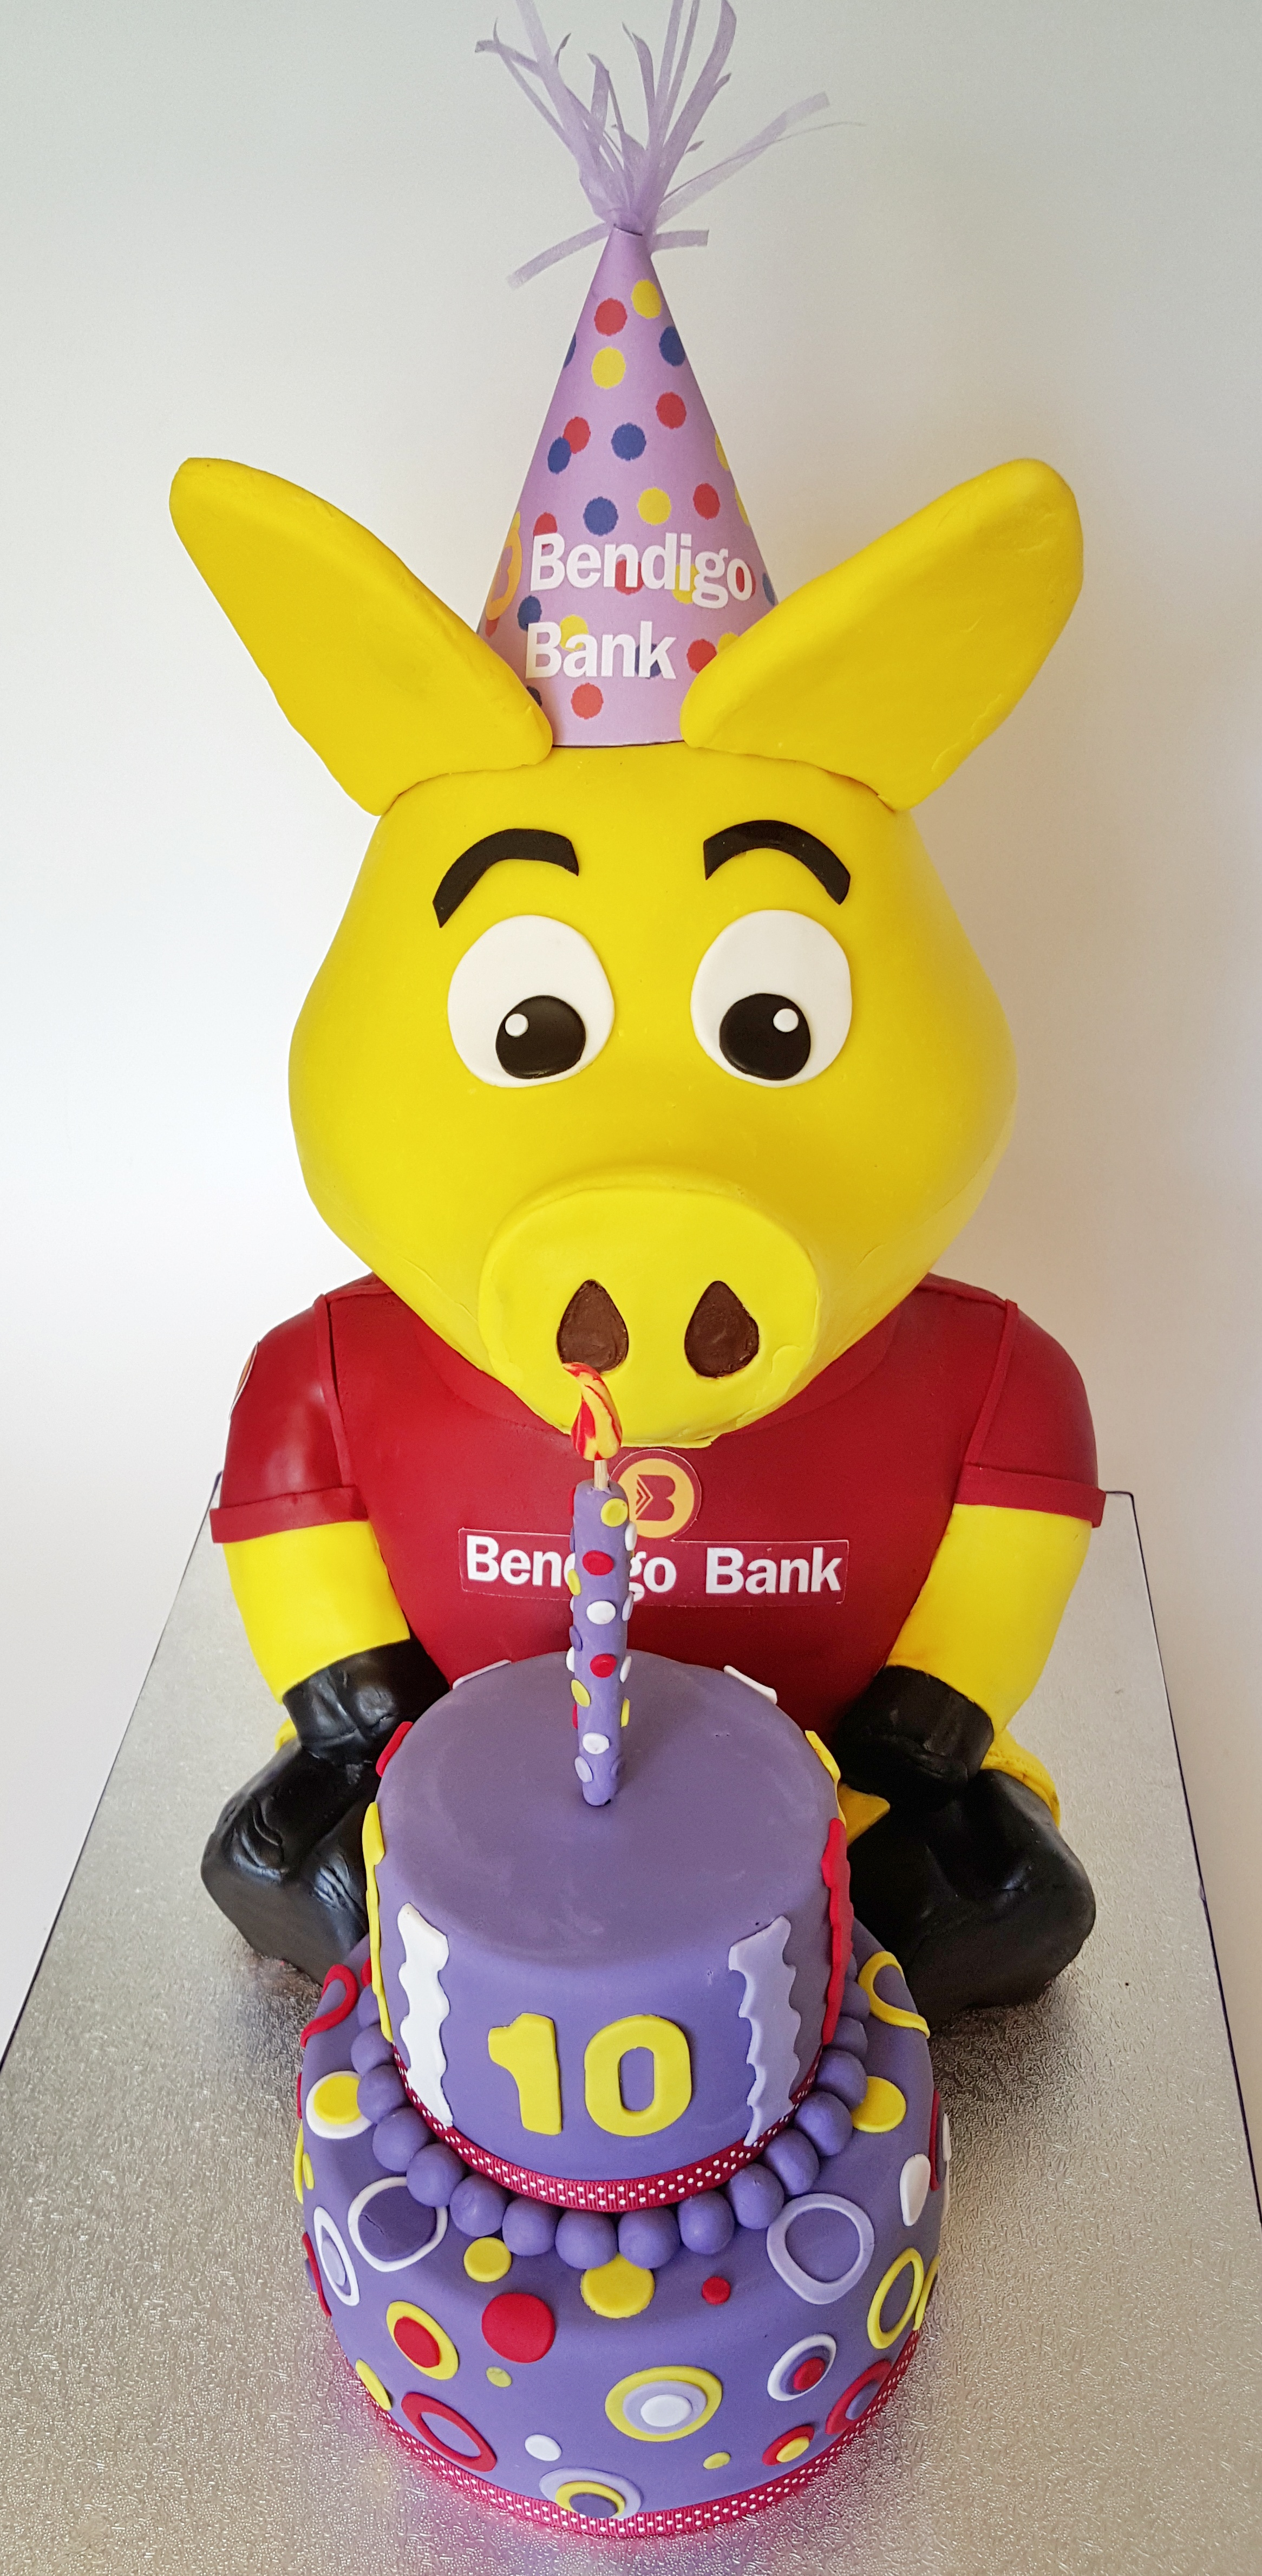 Bendigo Bank Bash